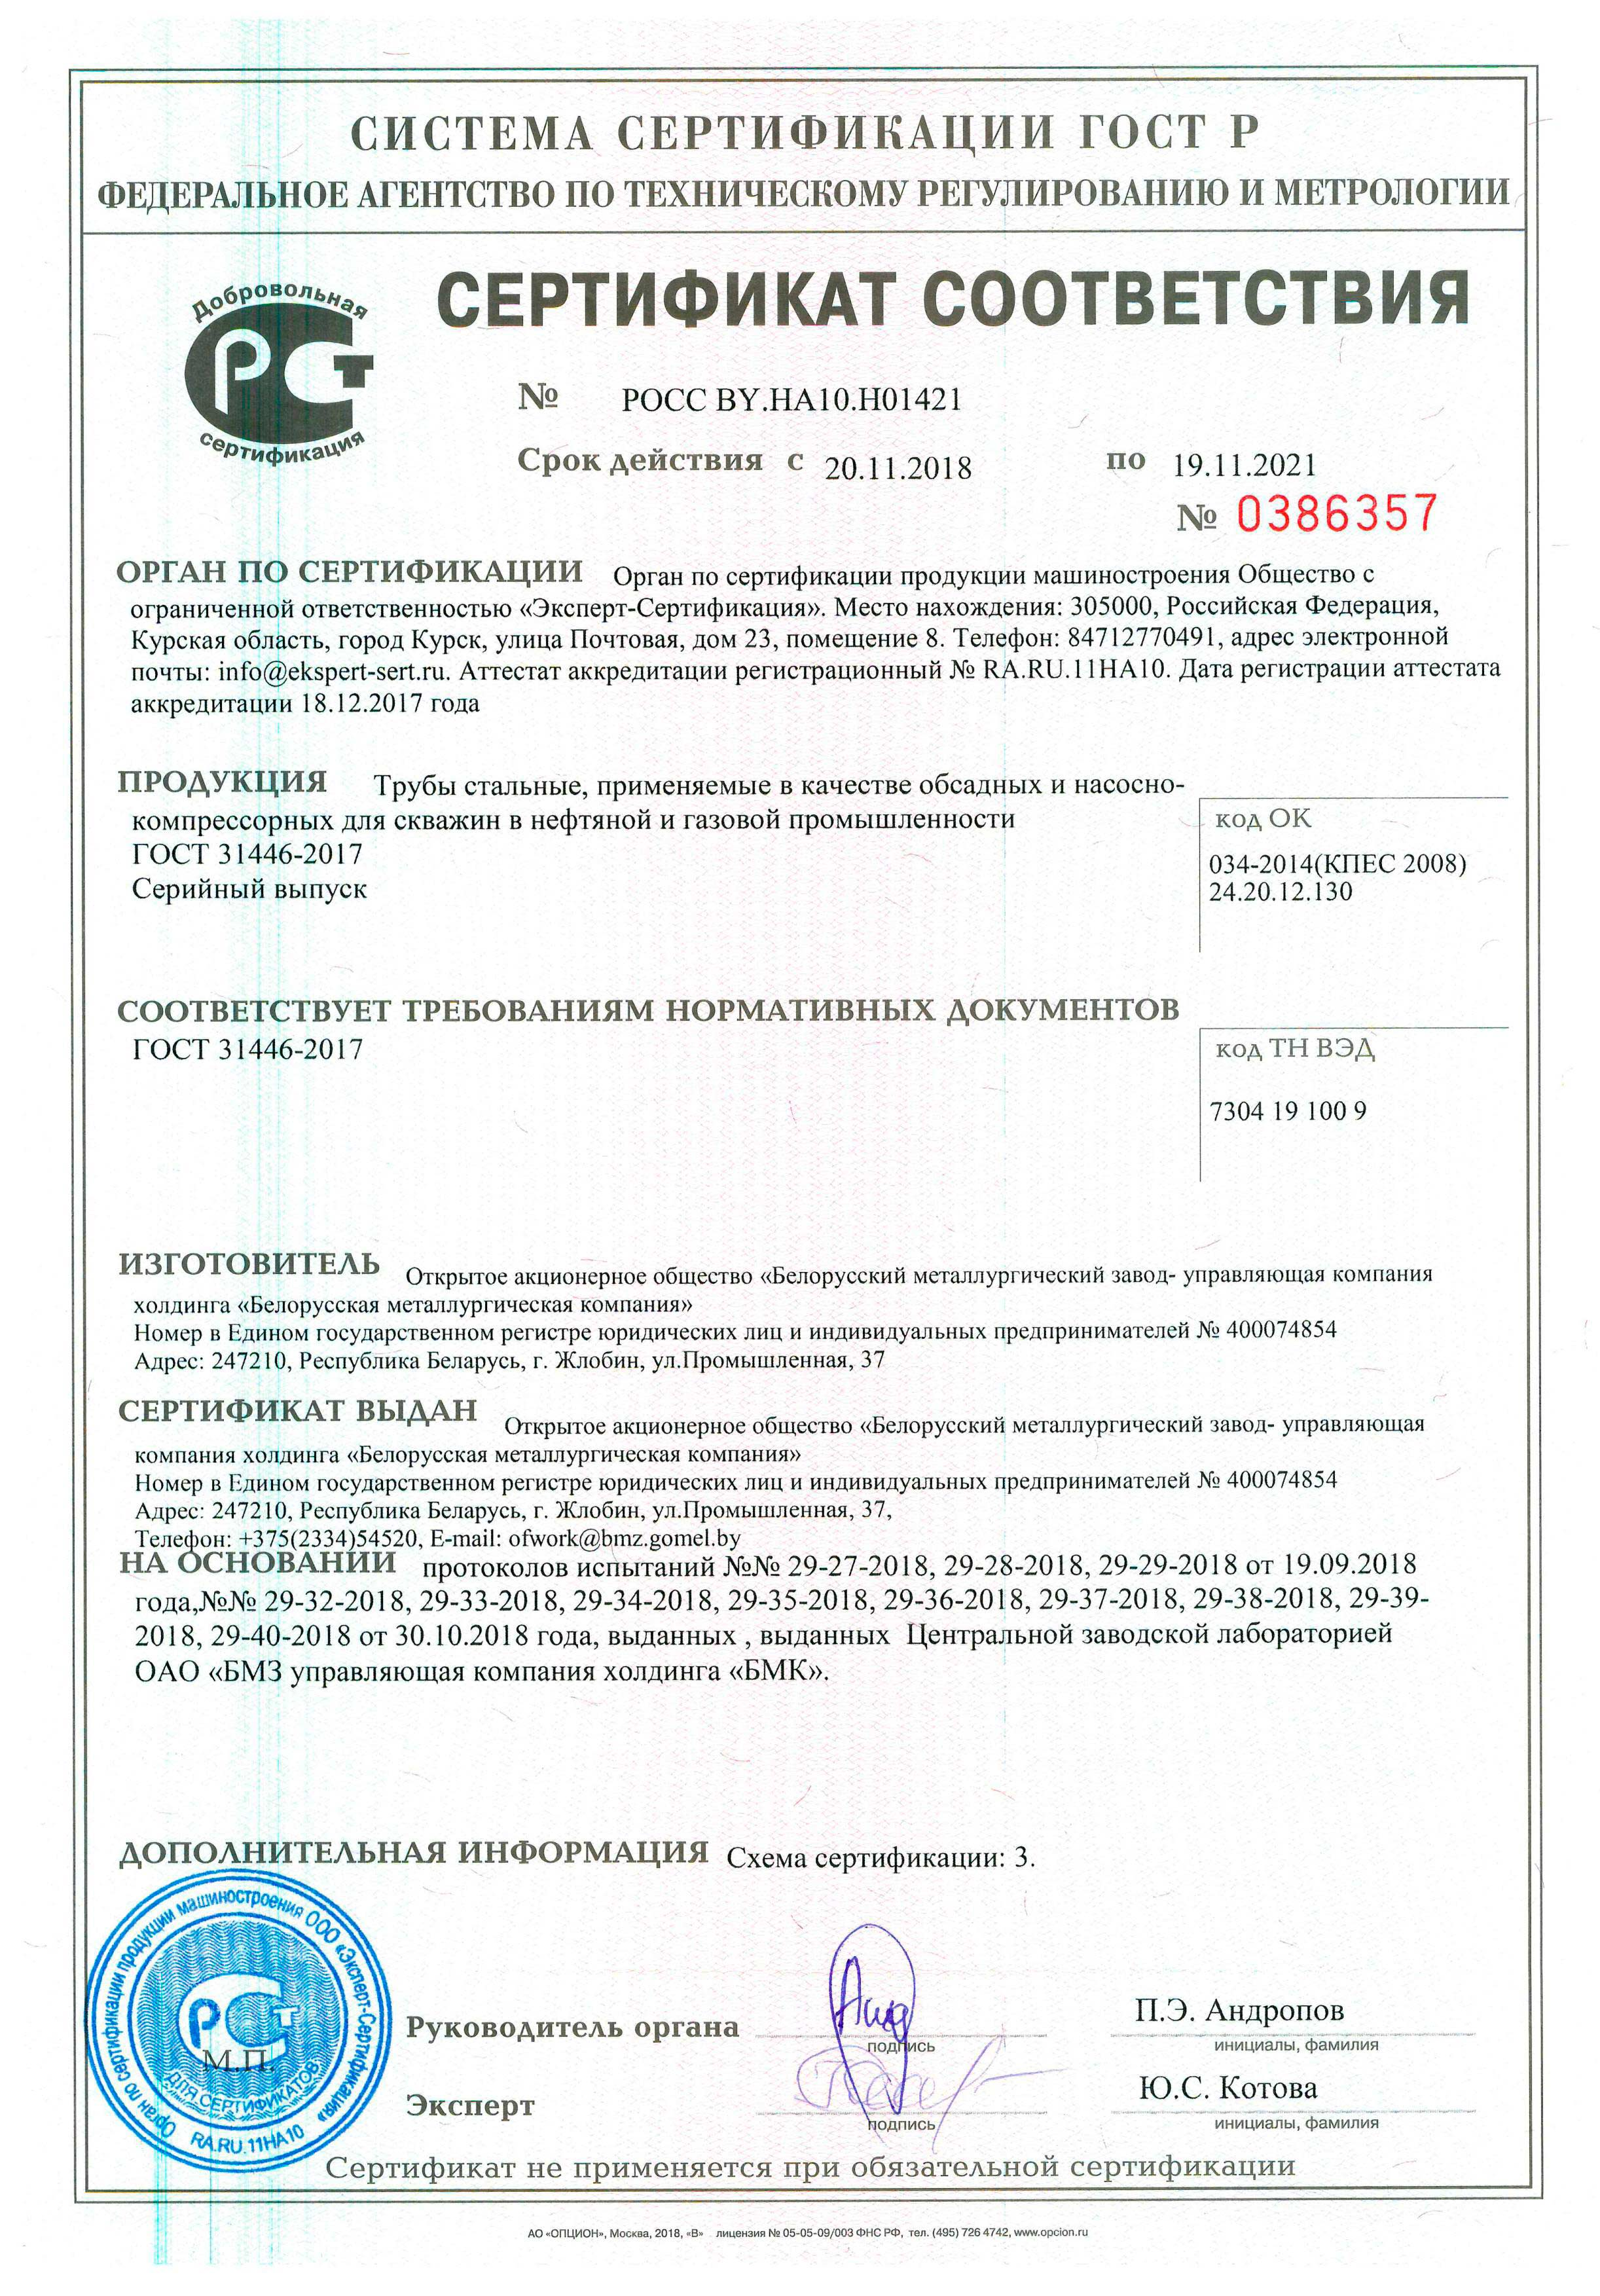 Certificate No.ROSS BY.AB28.H20214 GOST-R ( State Standard) for hot-deformed seamless pipes used as  casing pipe or pump-compressor pipe according to State Standard GOST 53366-2009